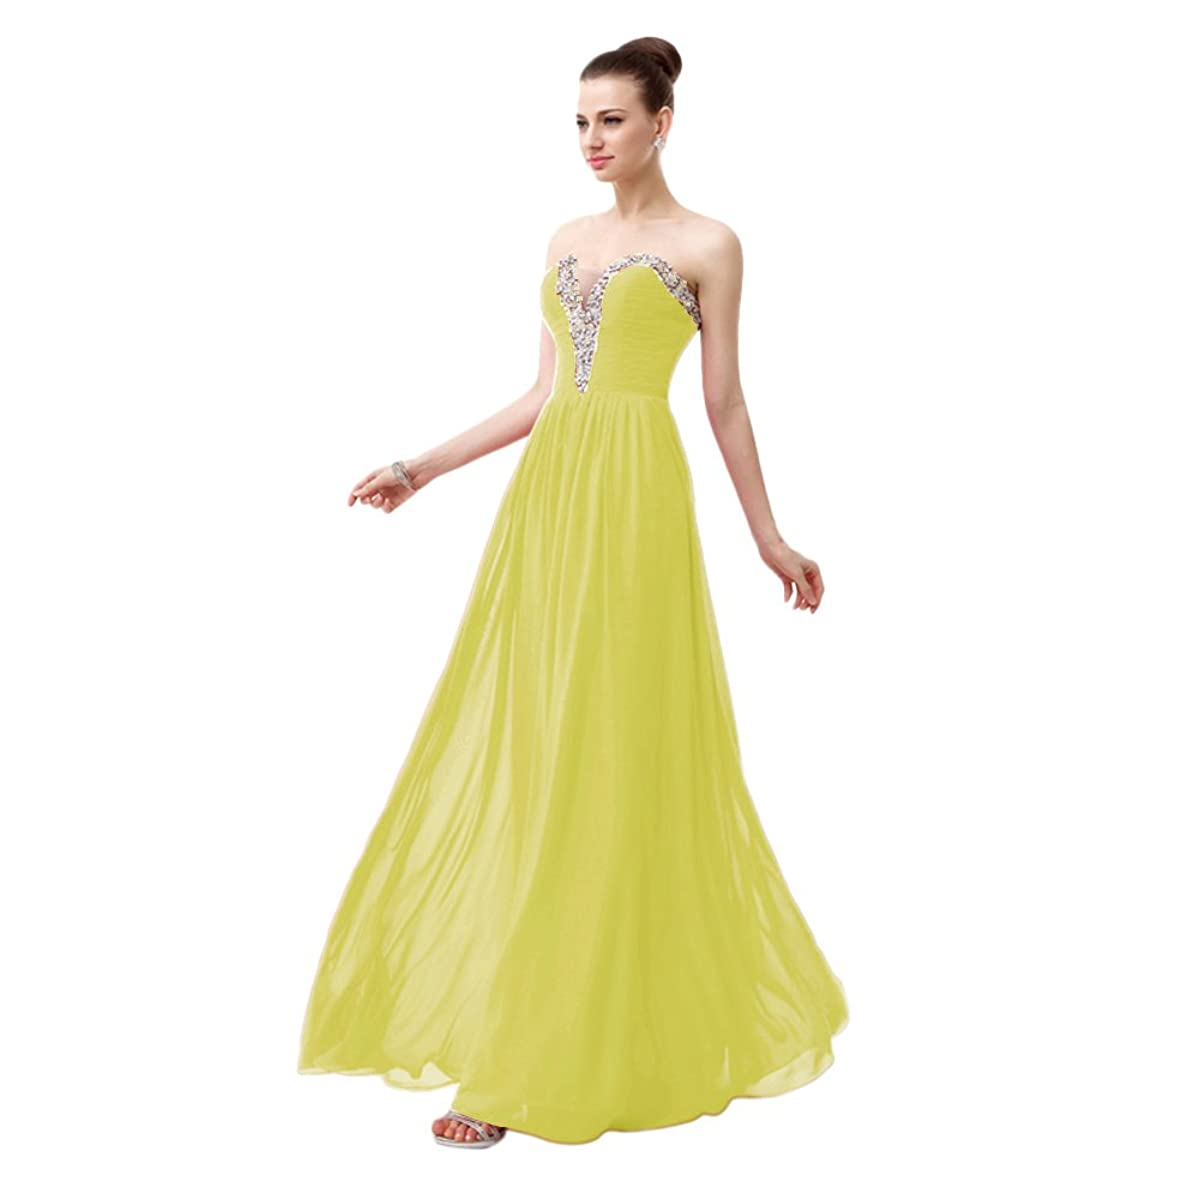 vimans Sexy Sweetheart Chiffon Dresses for Women Long Beaded Prom Gowns